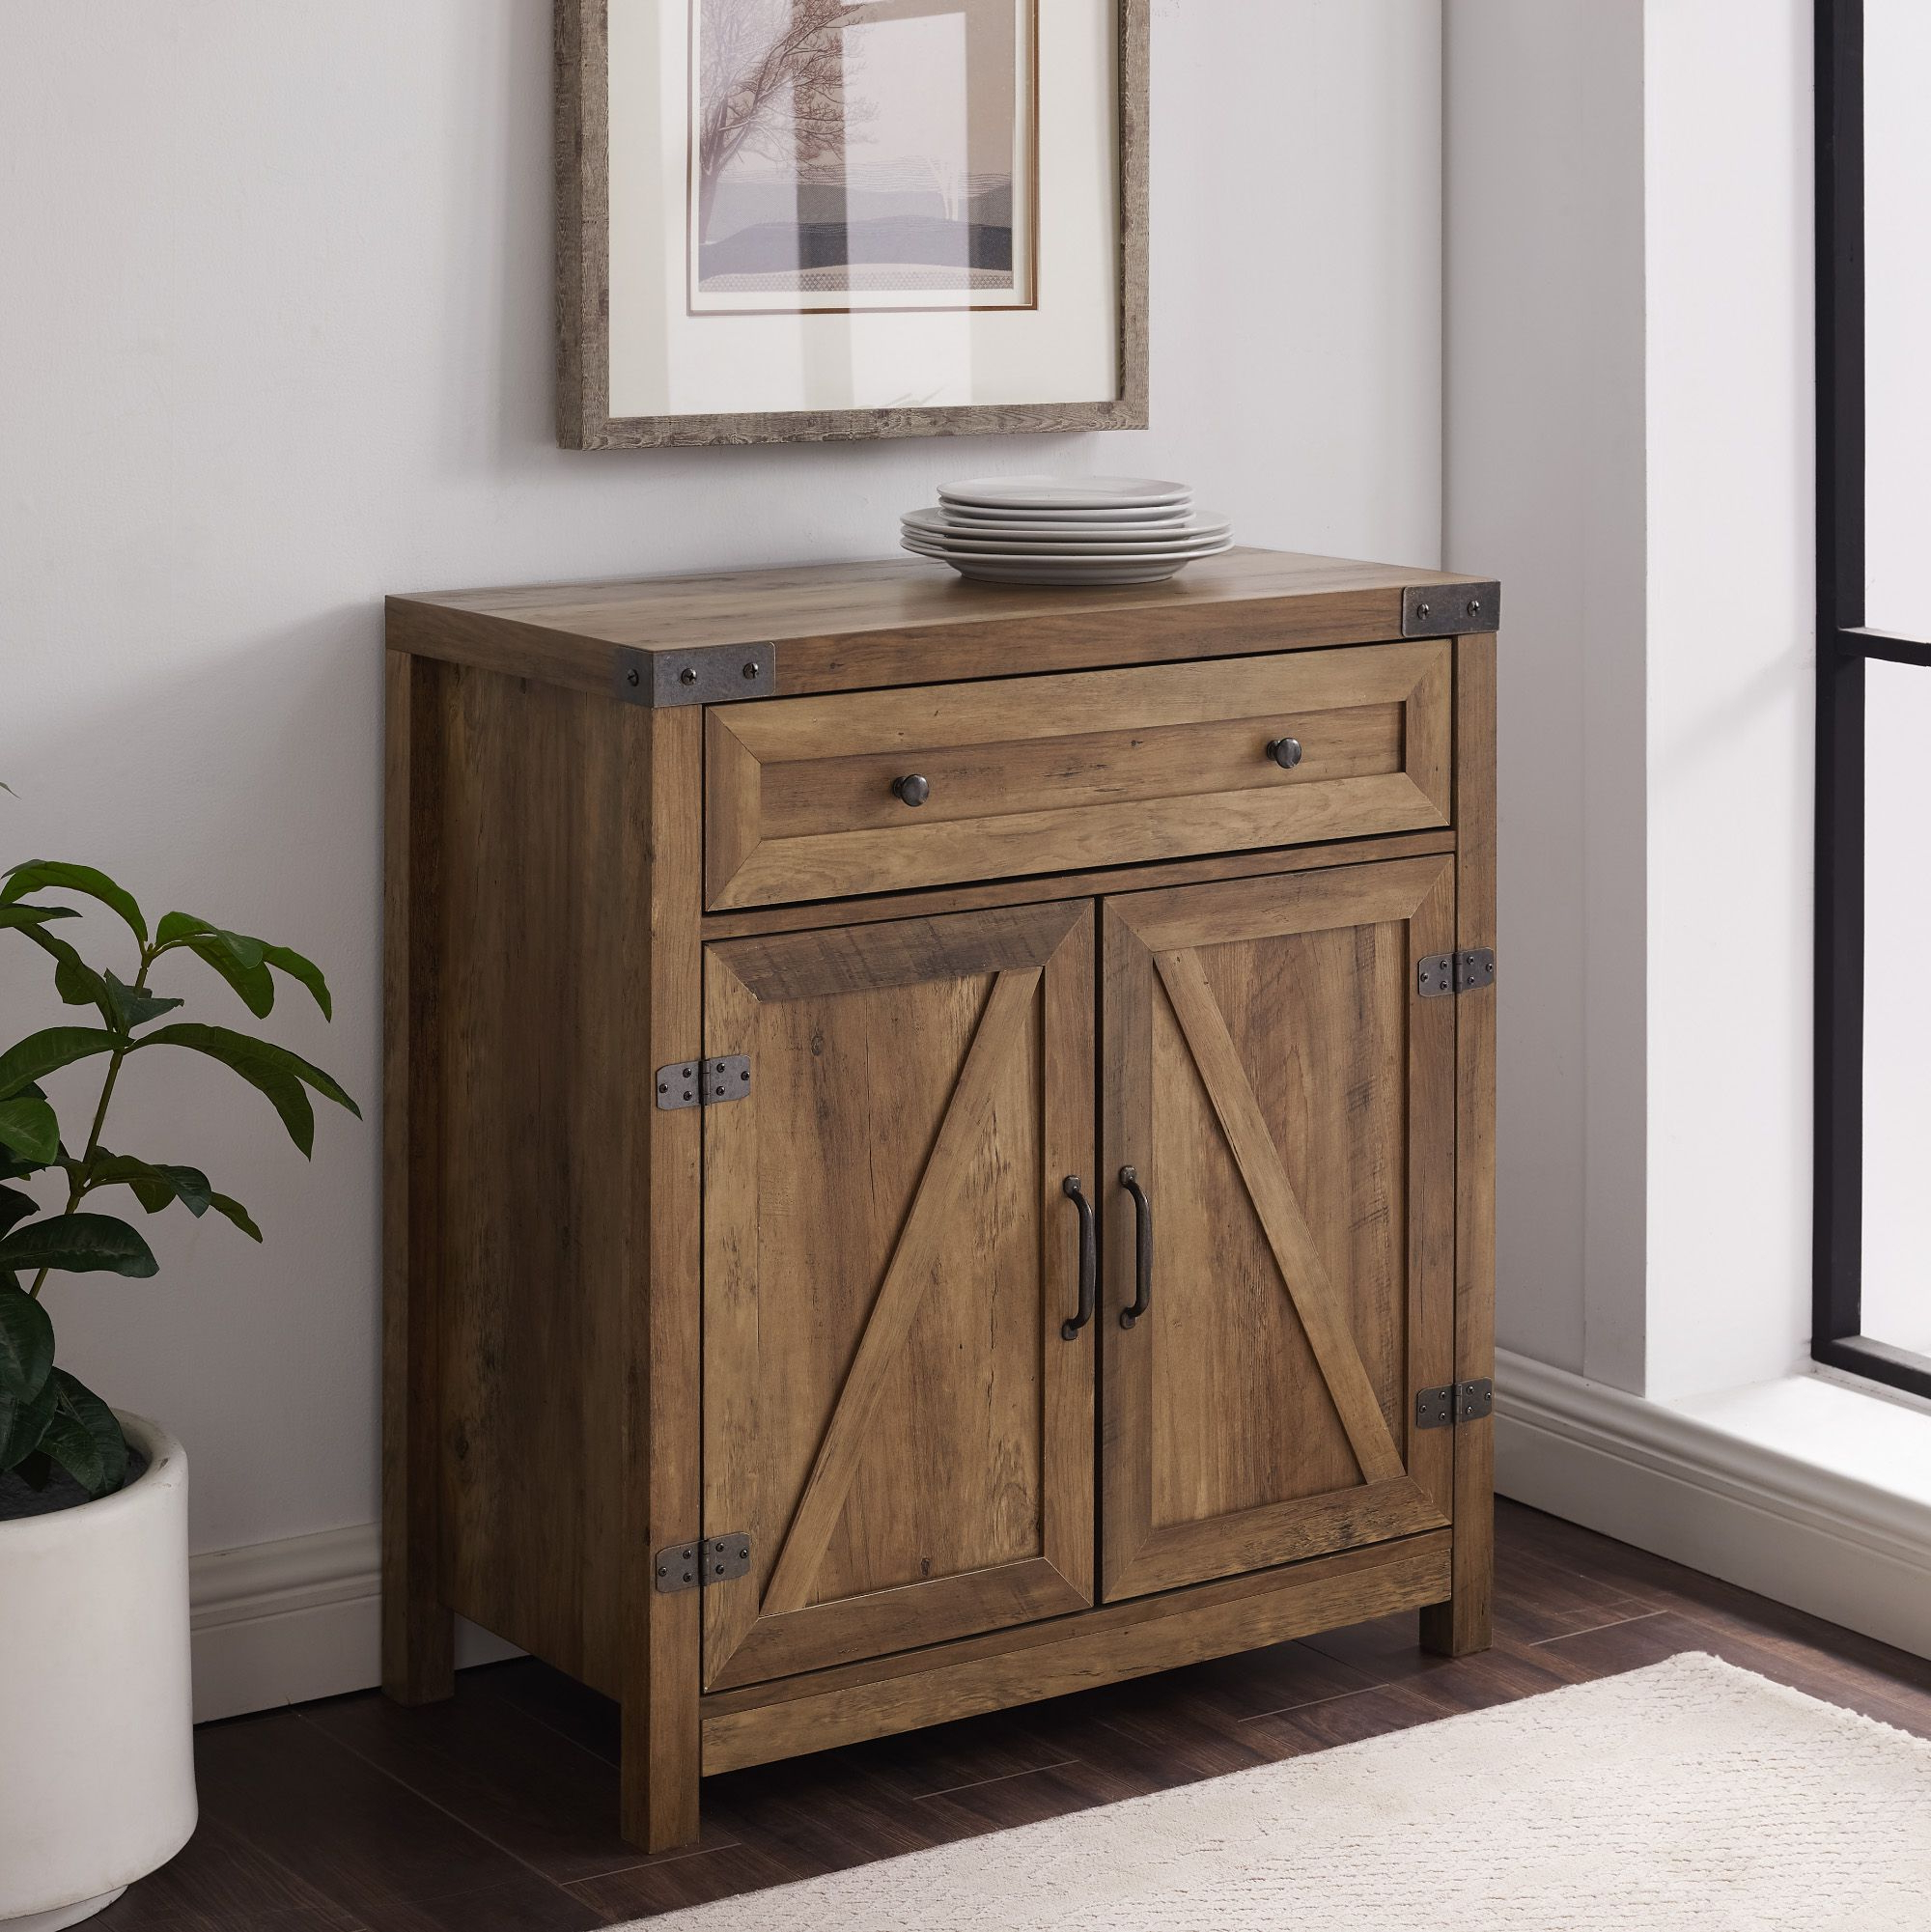 Manor Park Farmhouse Barn Door Accent Cabinet Reclaimed Pertaining To Woven Paths Farmhouse Barn Door Tv Stands In Multiple Finishes (View 10 of 20)